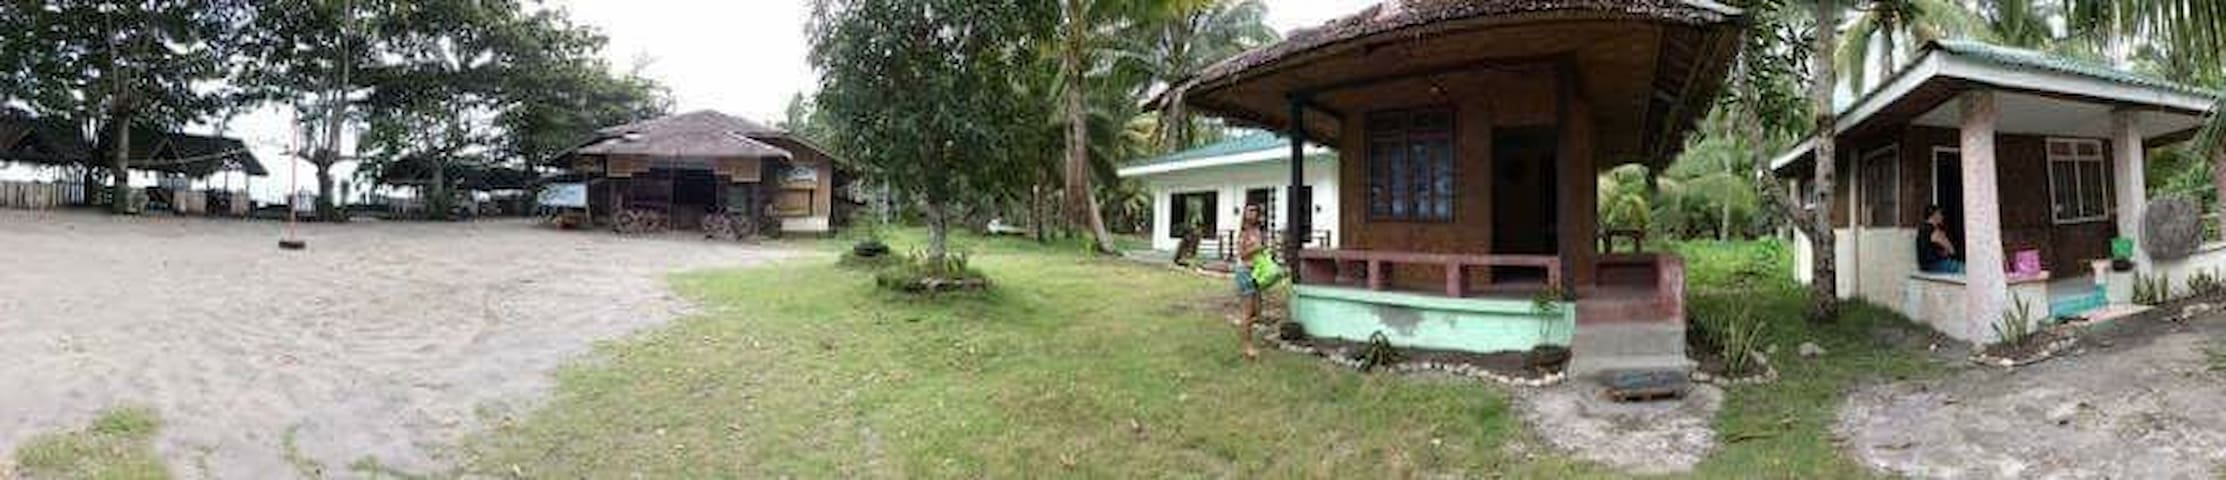 Morzant beach resort Beach house. - Lianga - House